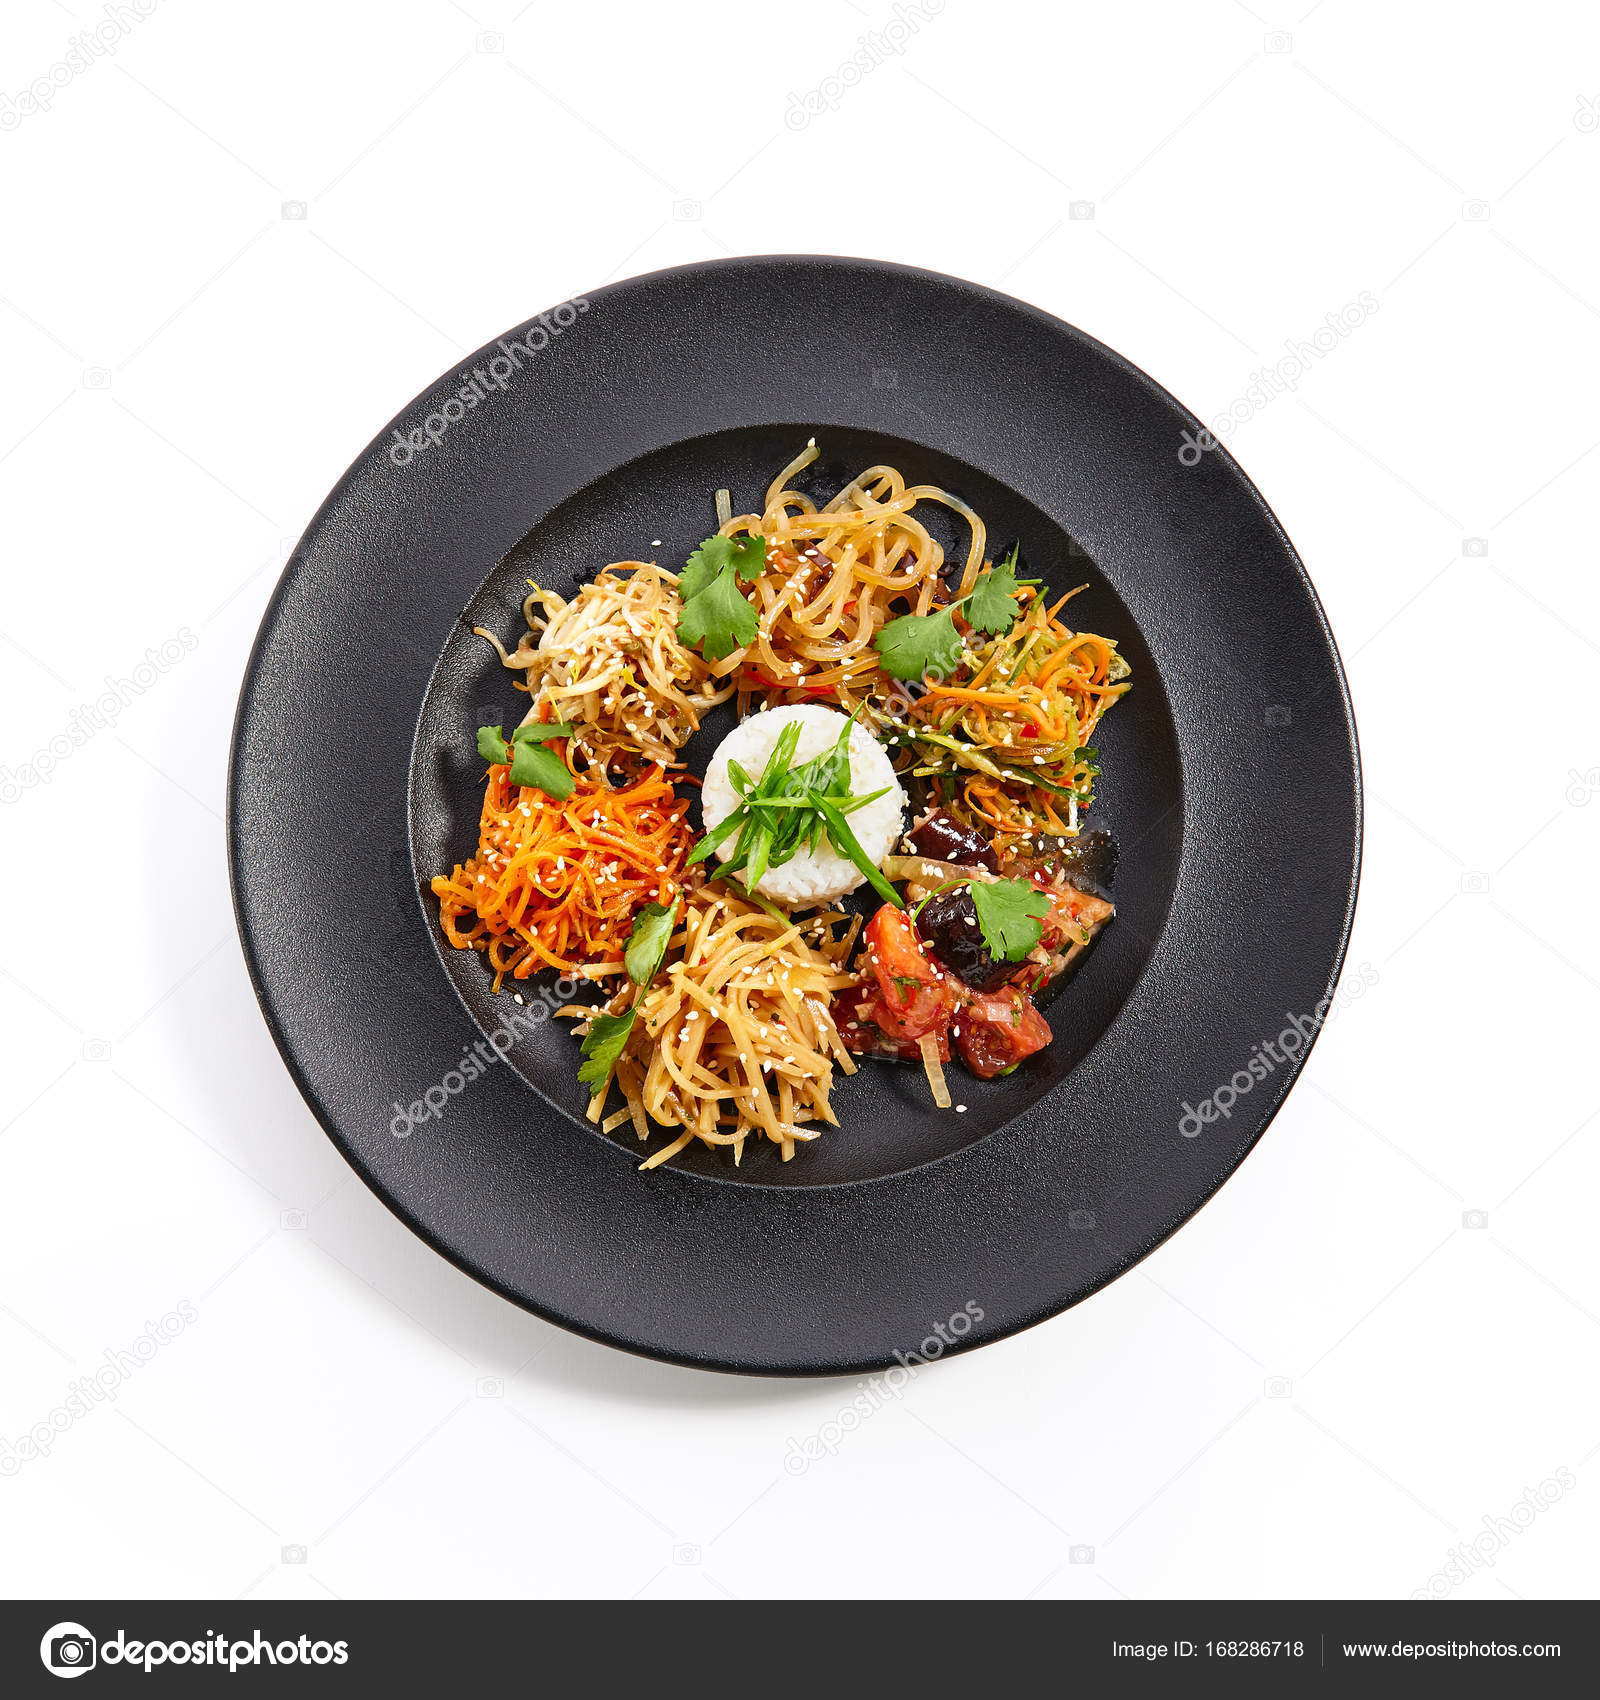 For pan asian style have thought